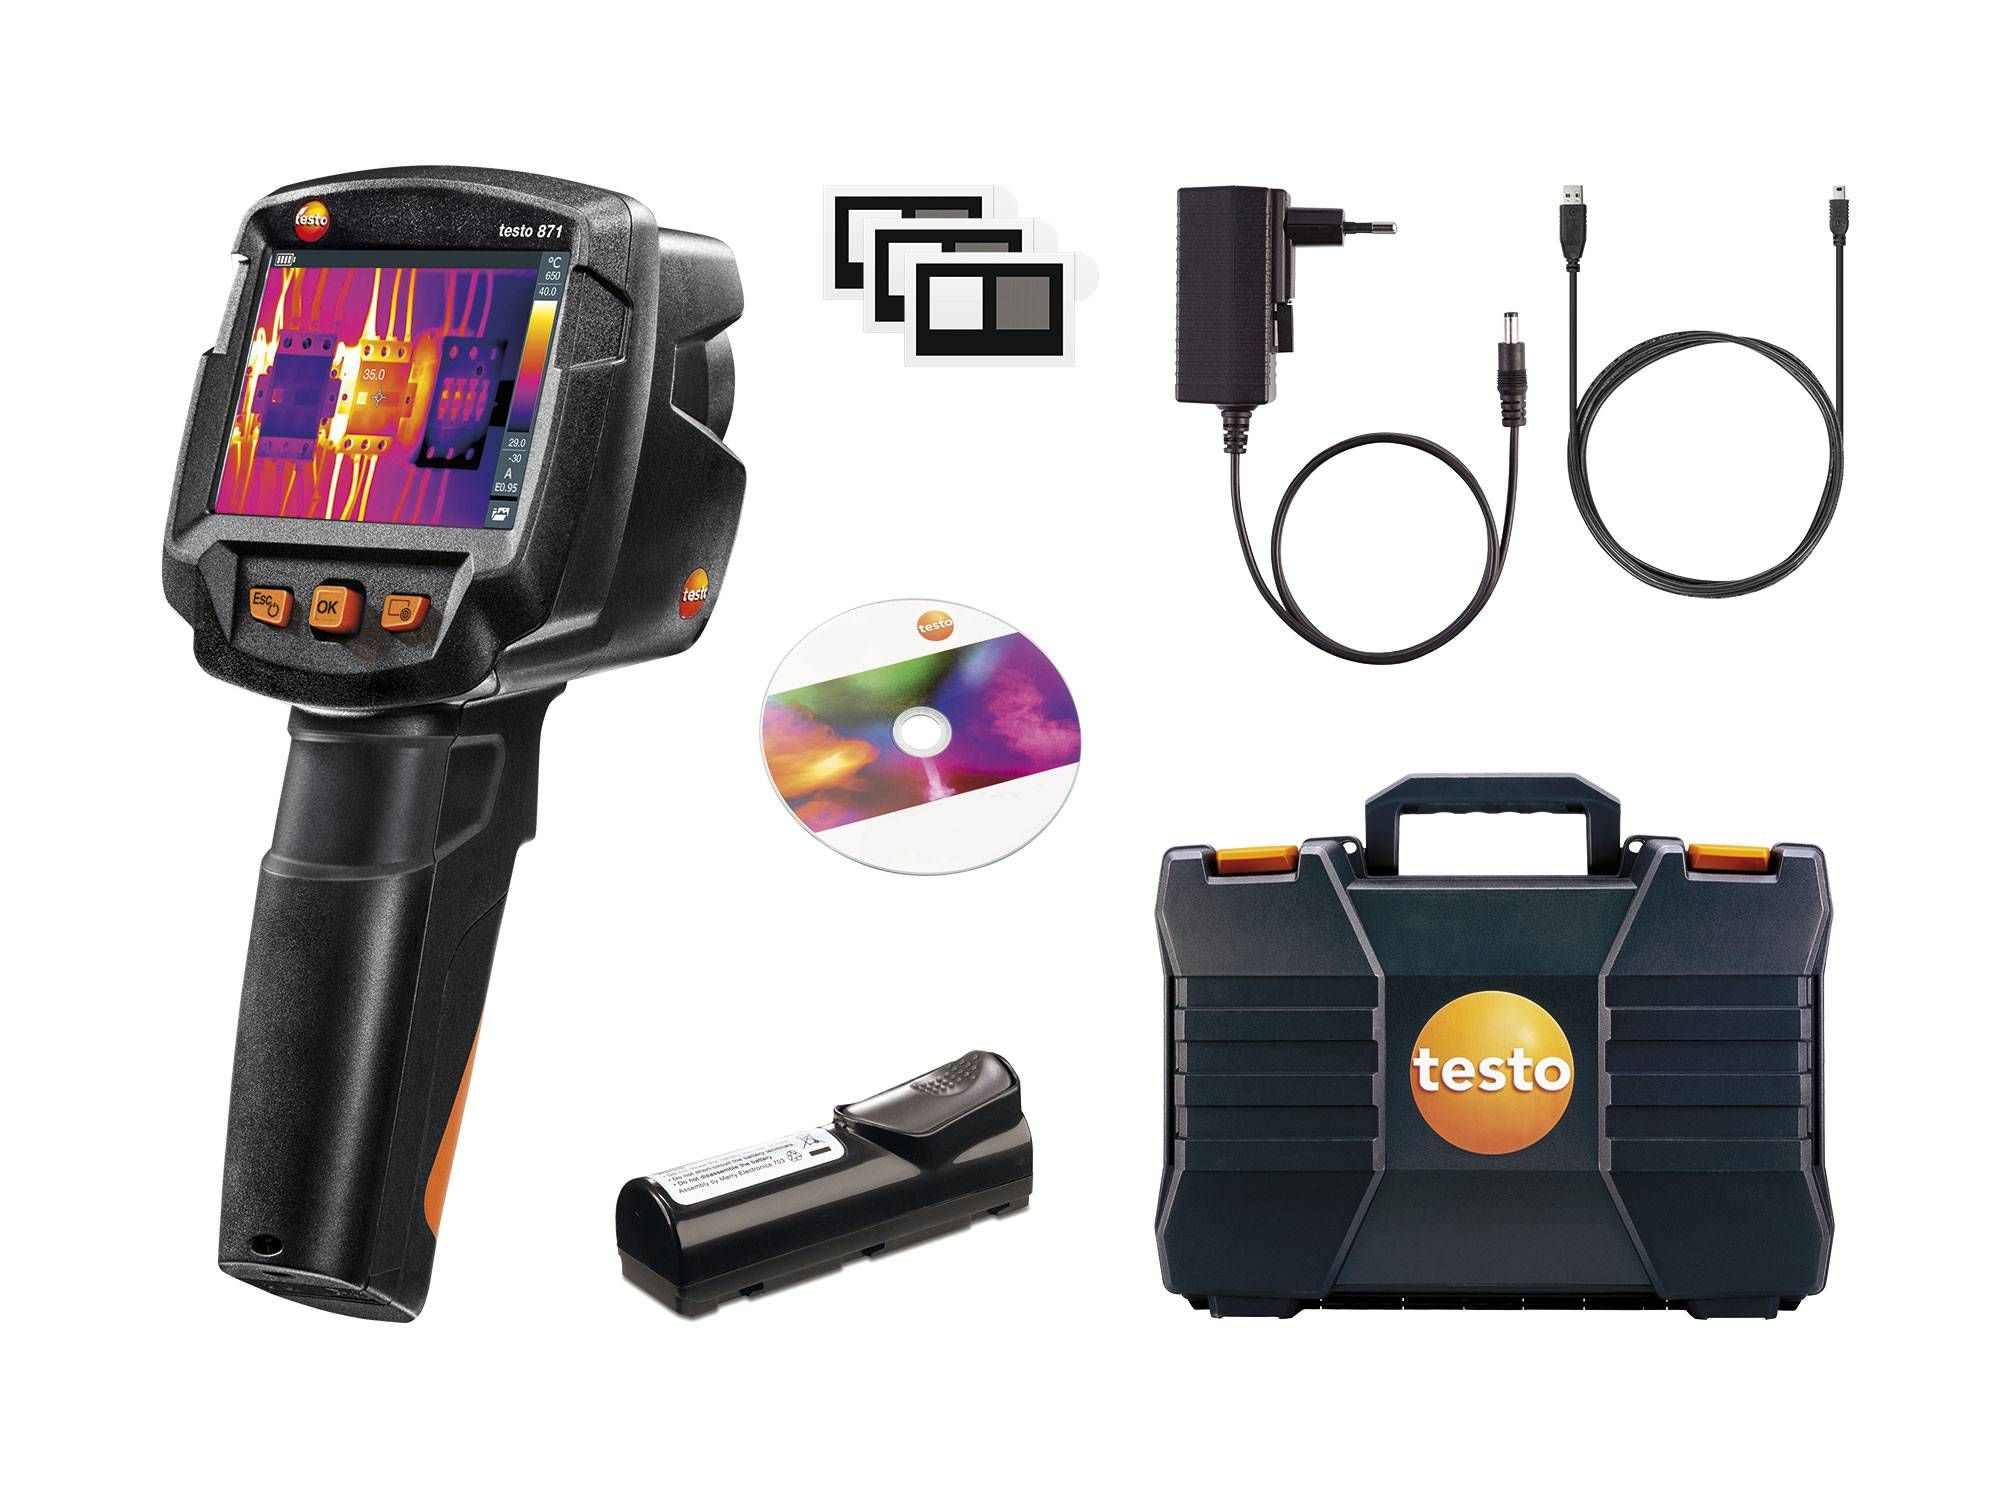 testo-871-thermal-imager-delivery-scope-free_master